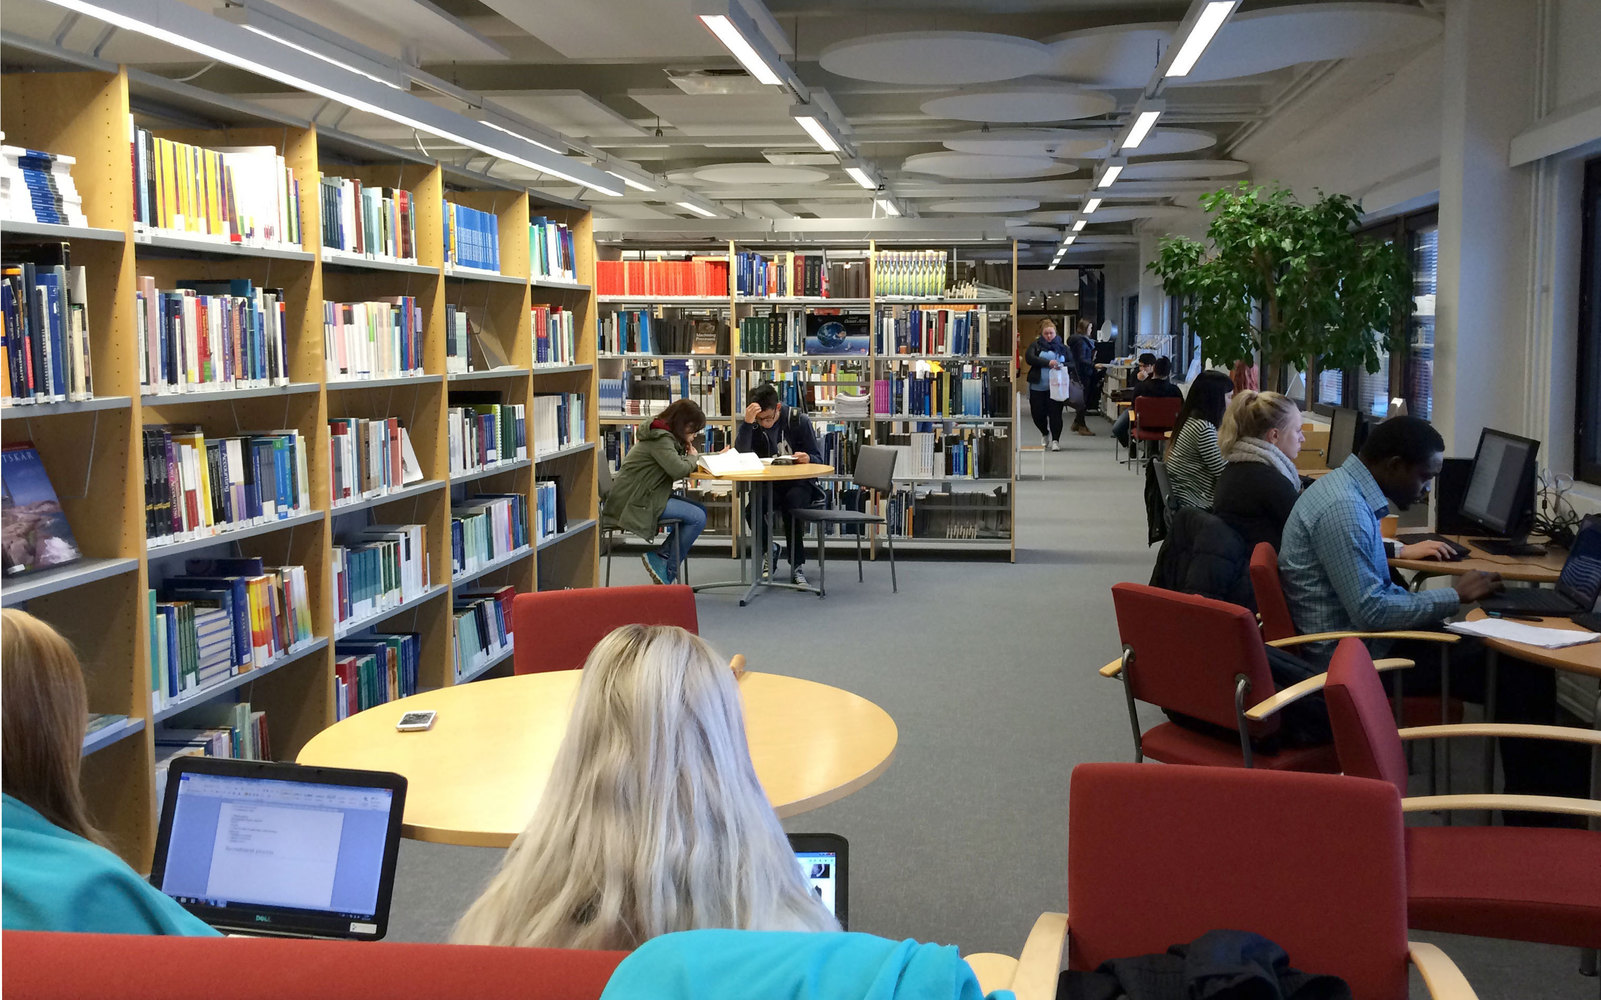 SAMK Library Rauma (Satakunta University of Applied Sciences)